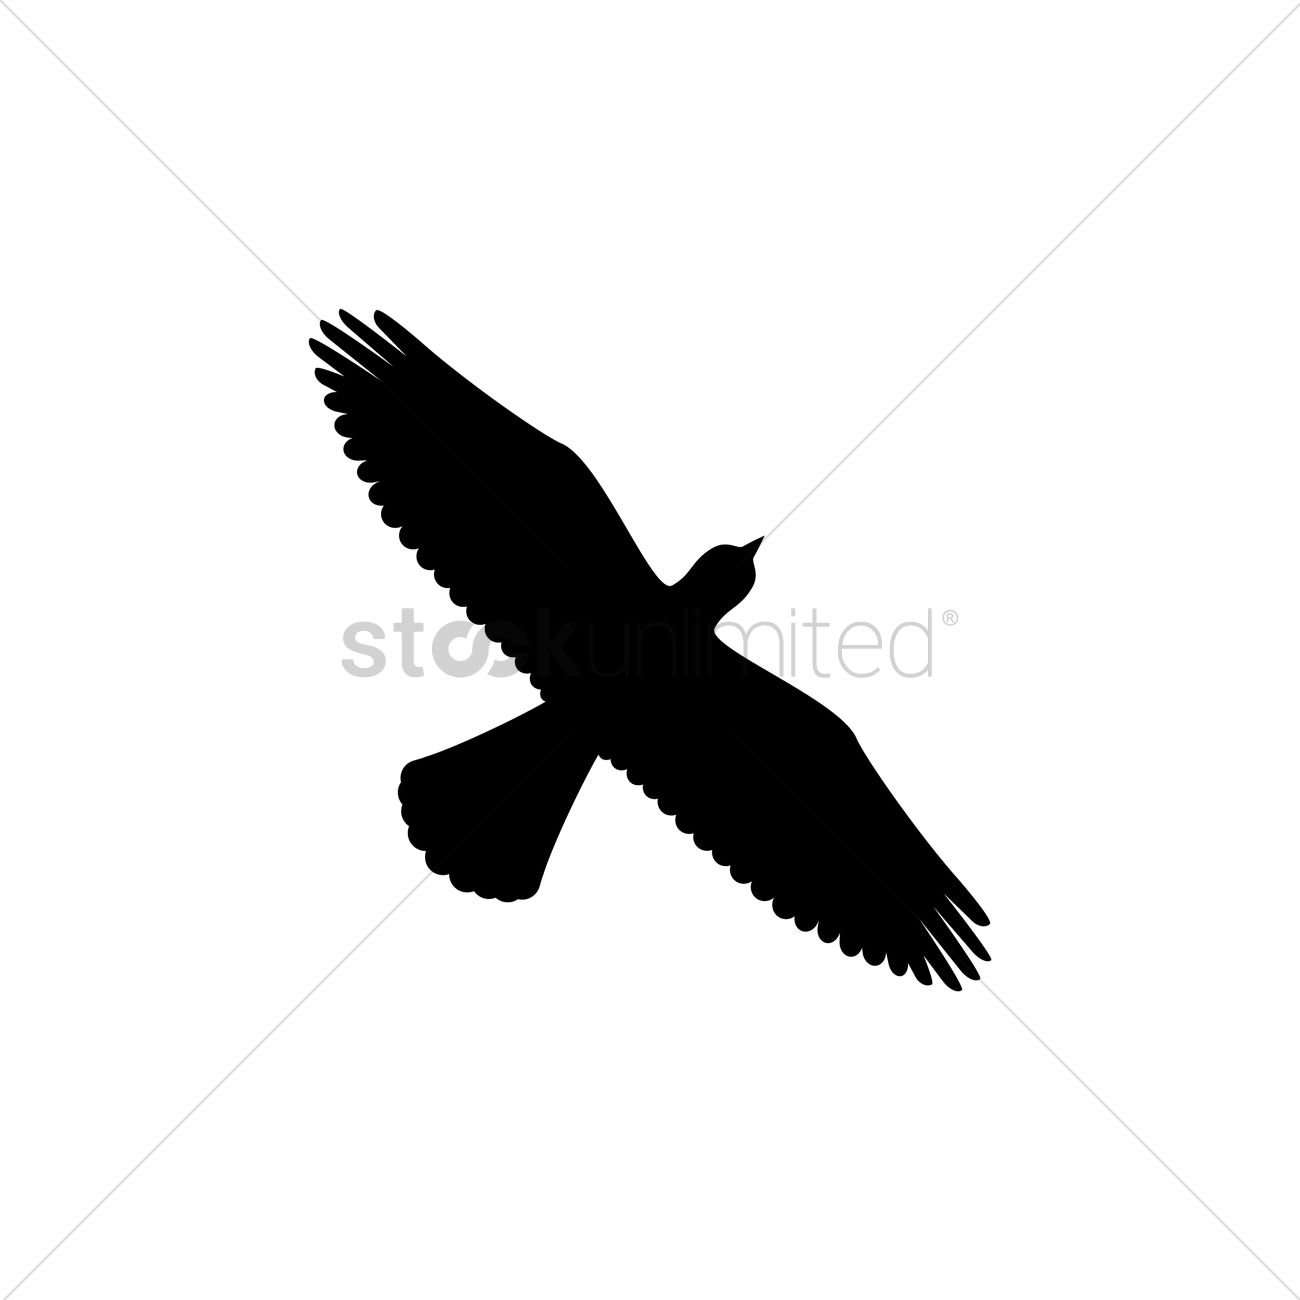 1300x1300 Top View Of Bird Silhouette Vector Image